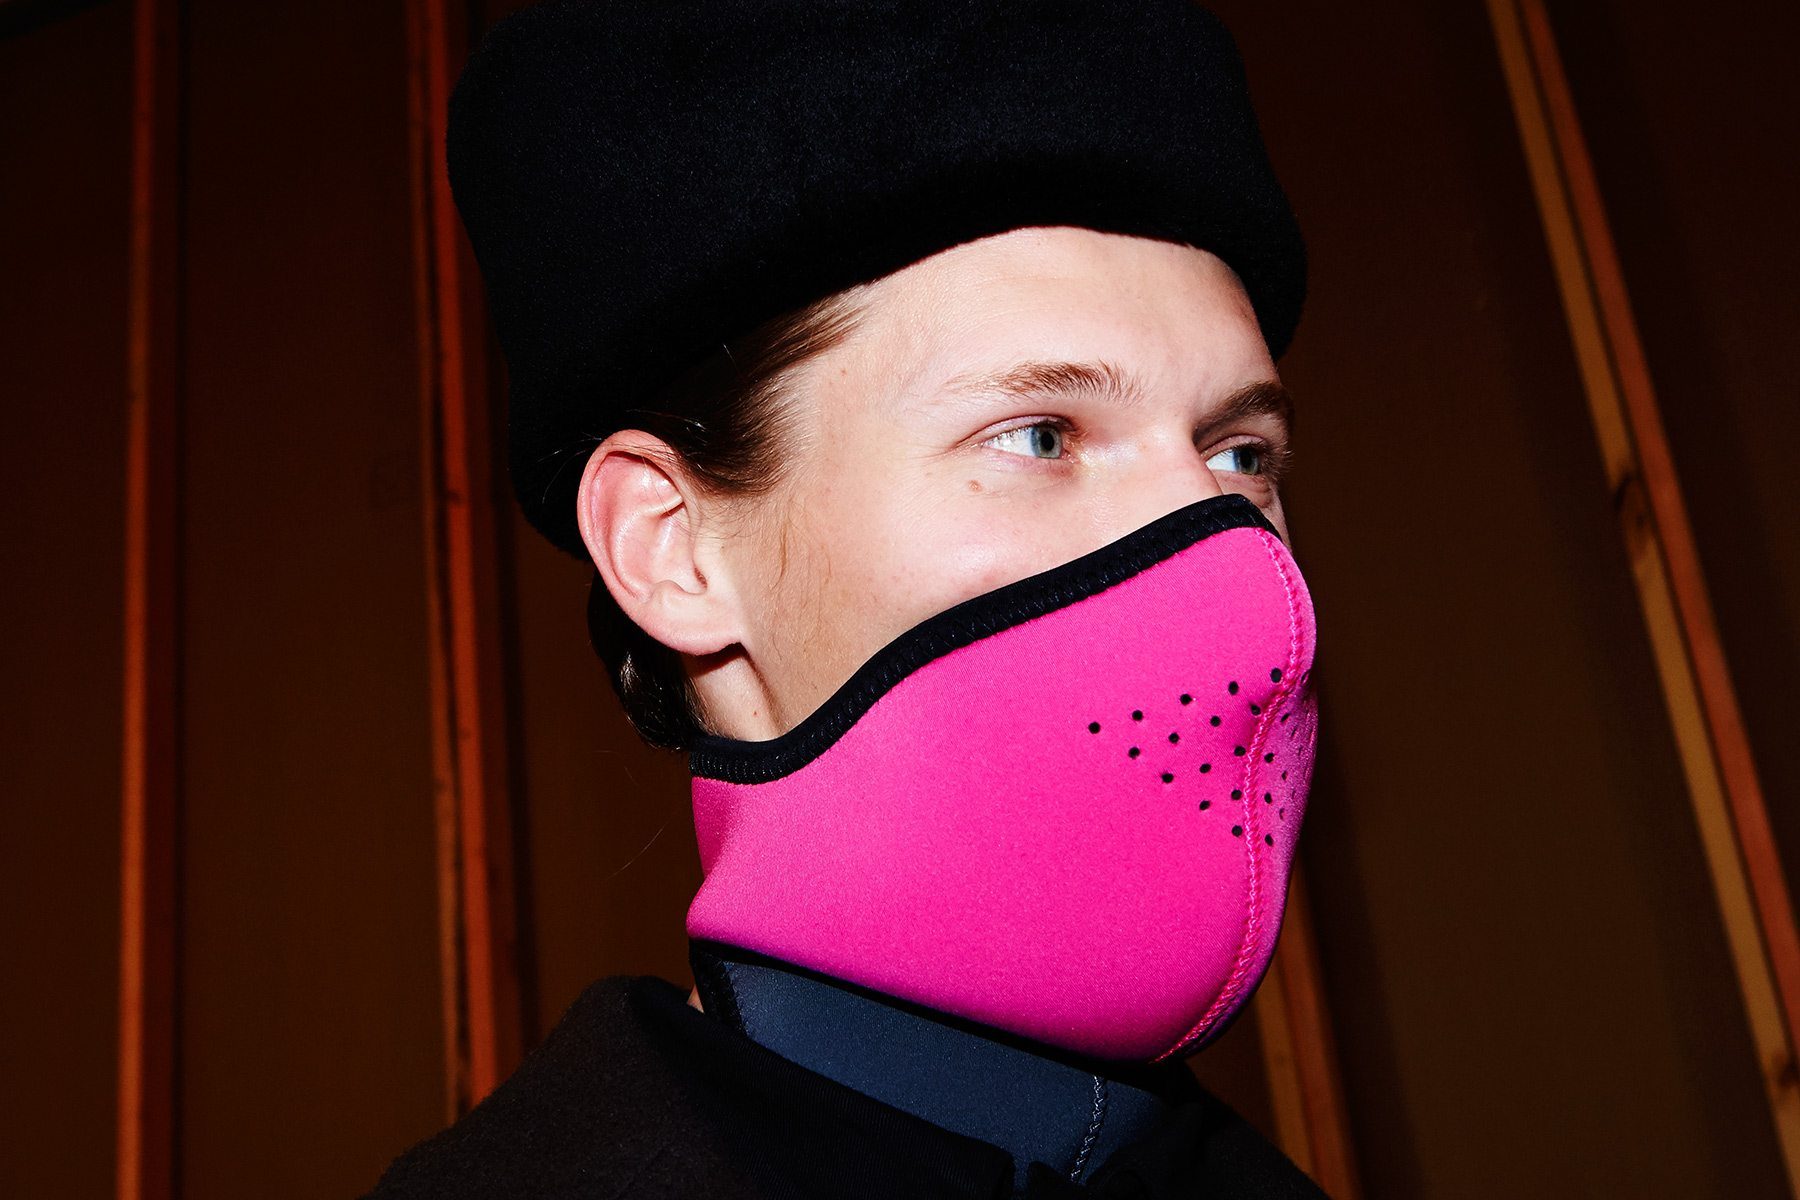 A model wears a pink ski mask, backstage at Robert Geller A/W17 menswear show. Photographed for Ponyboy magazine by Alexander Thompson in New York City.